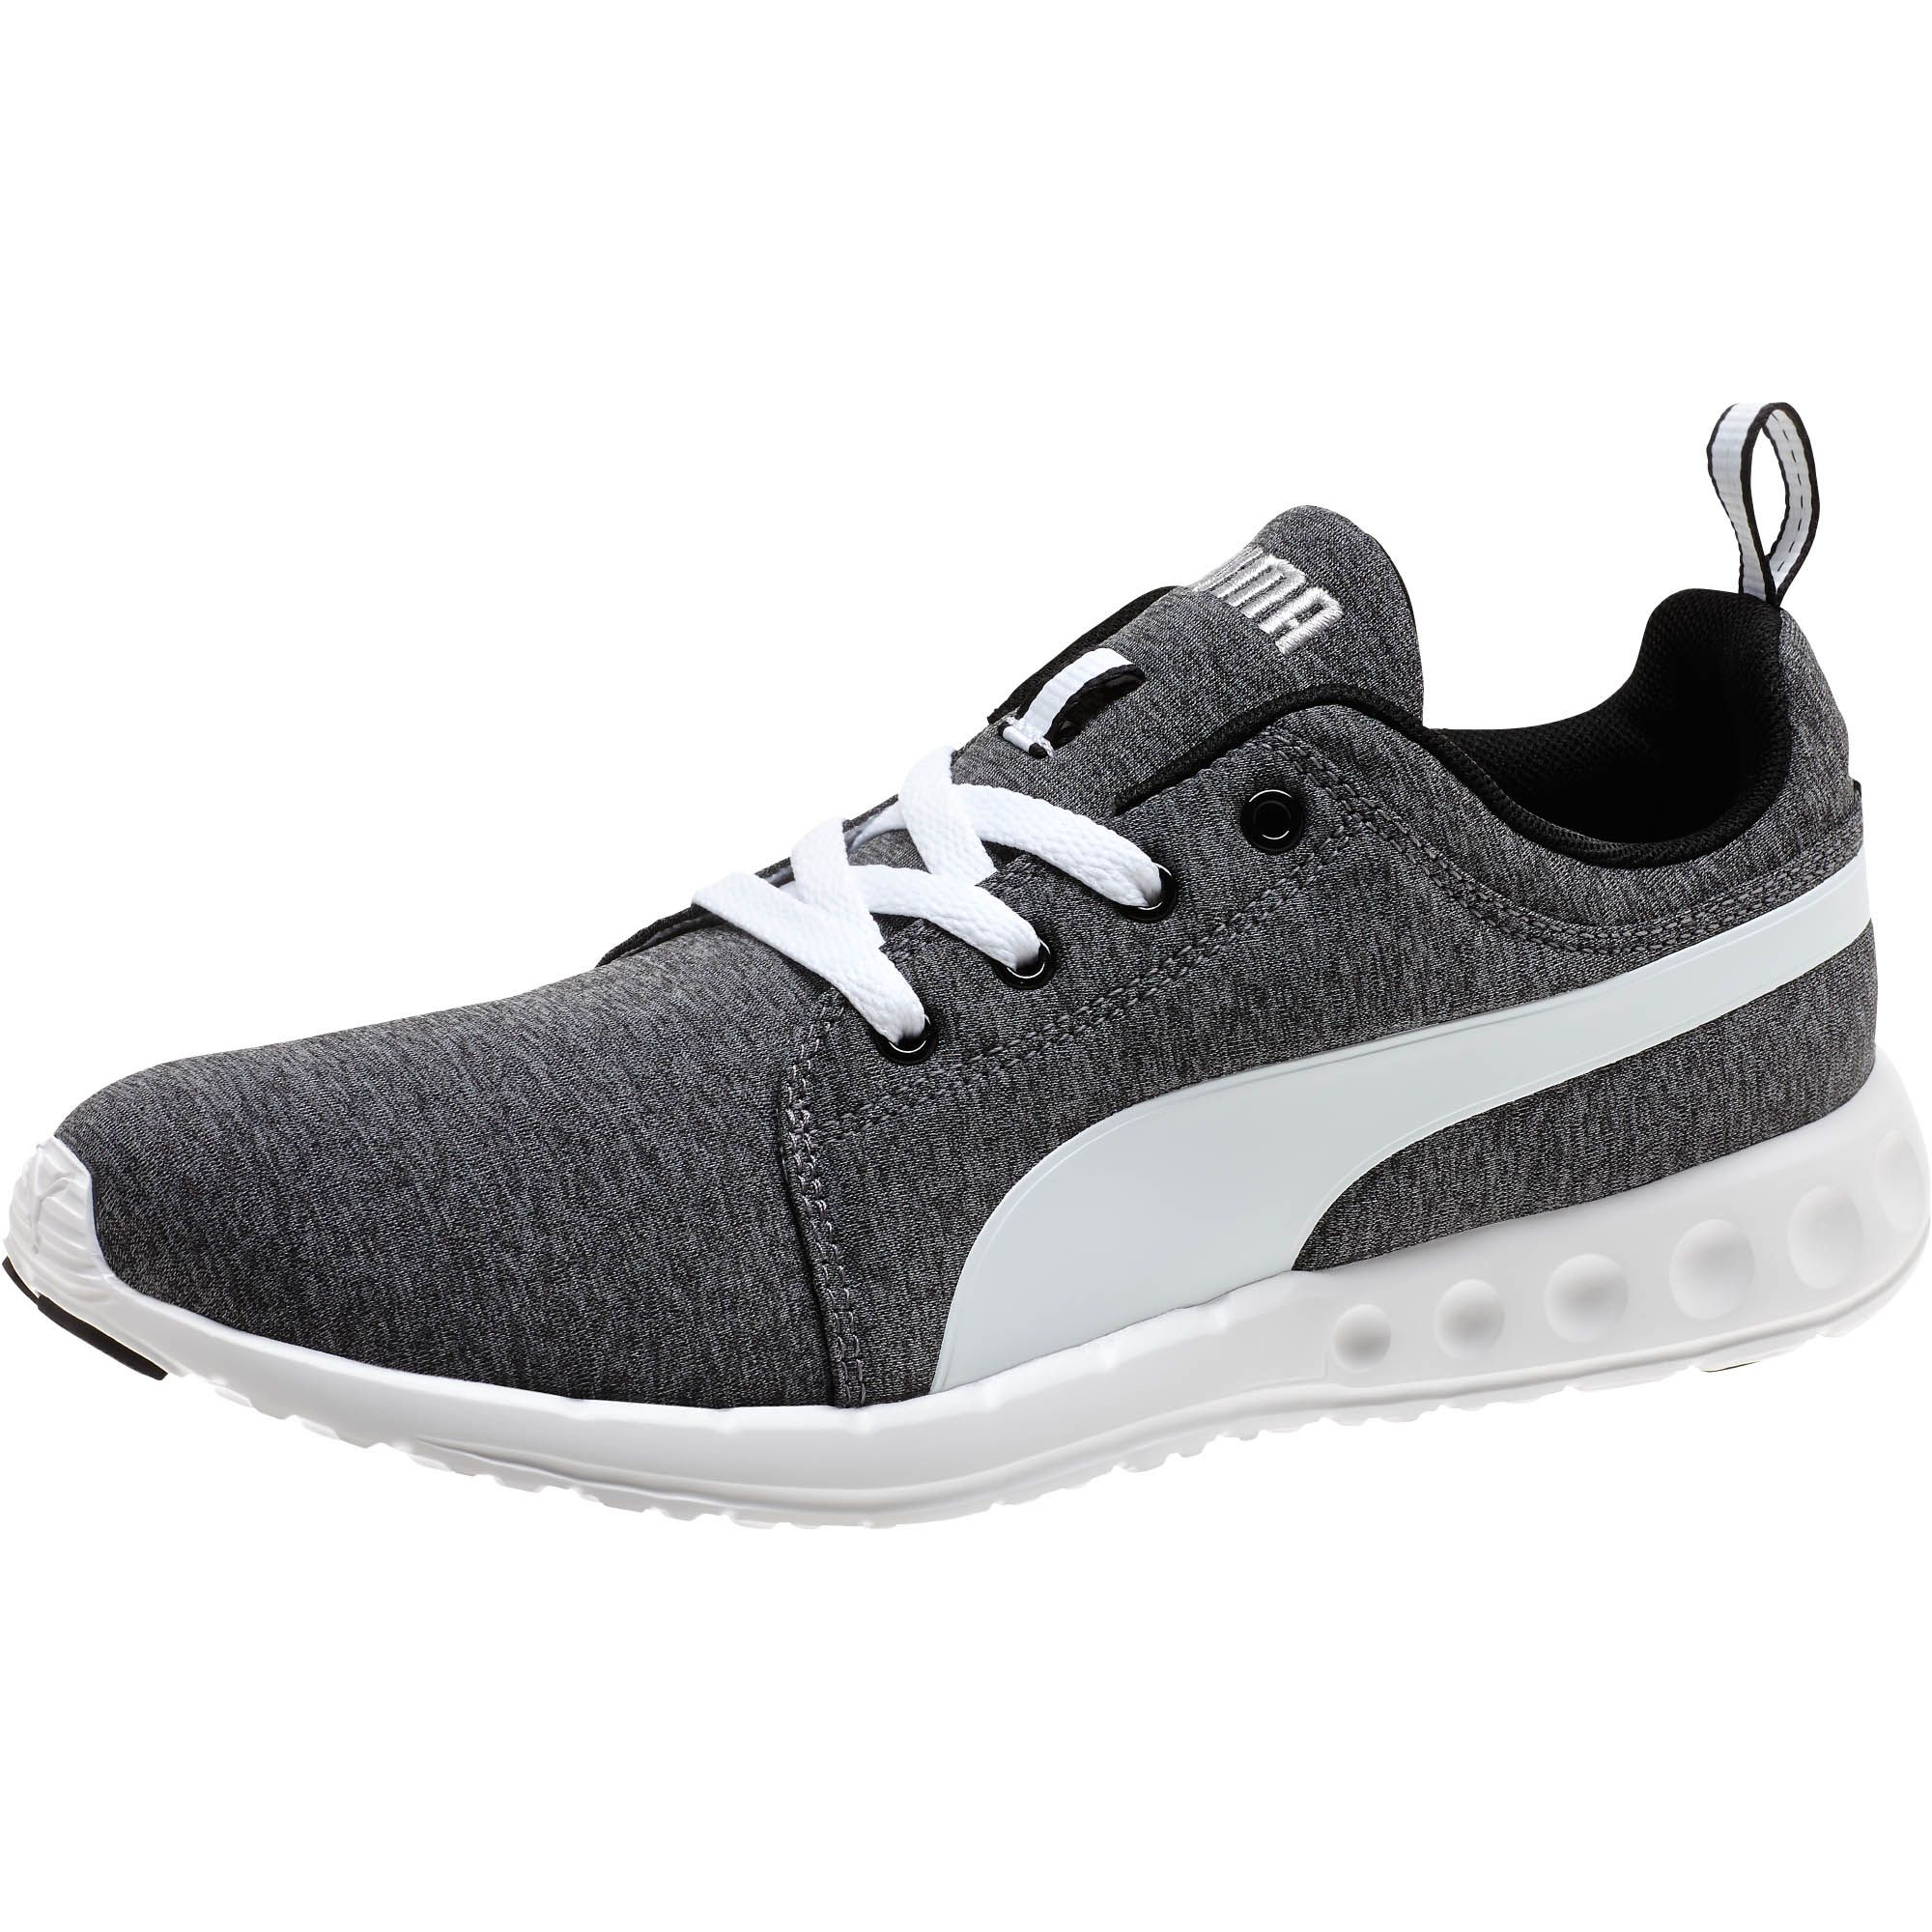 76e9bd505 Lyst - PUMA Carson Runner Heather Men s Running Shoes in Gray for Men